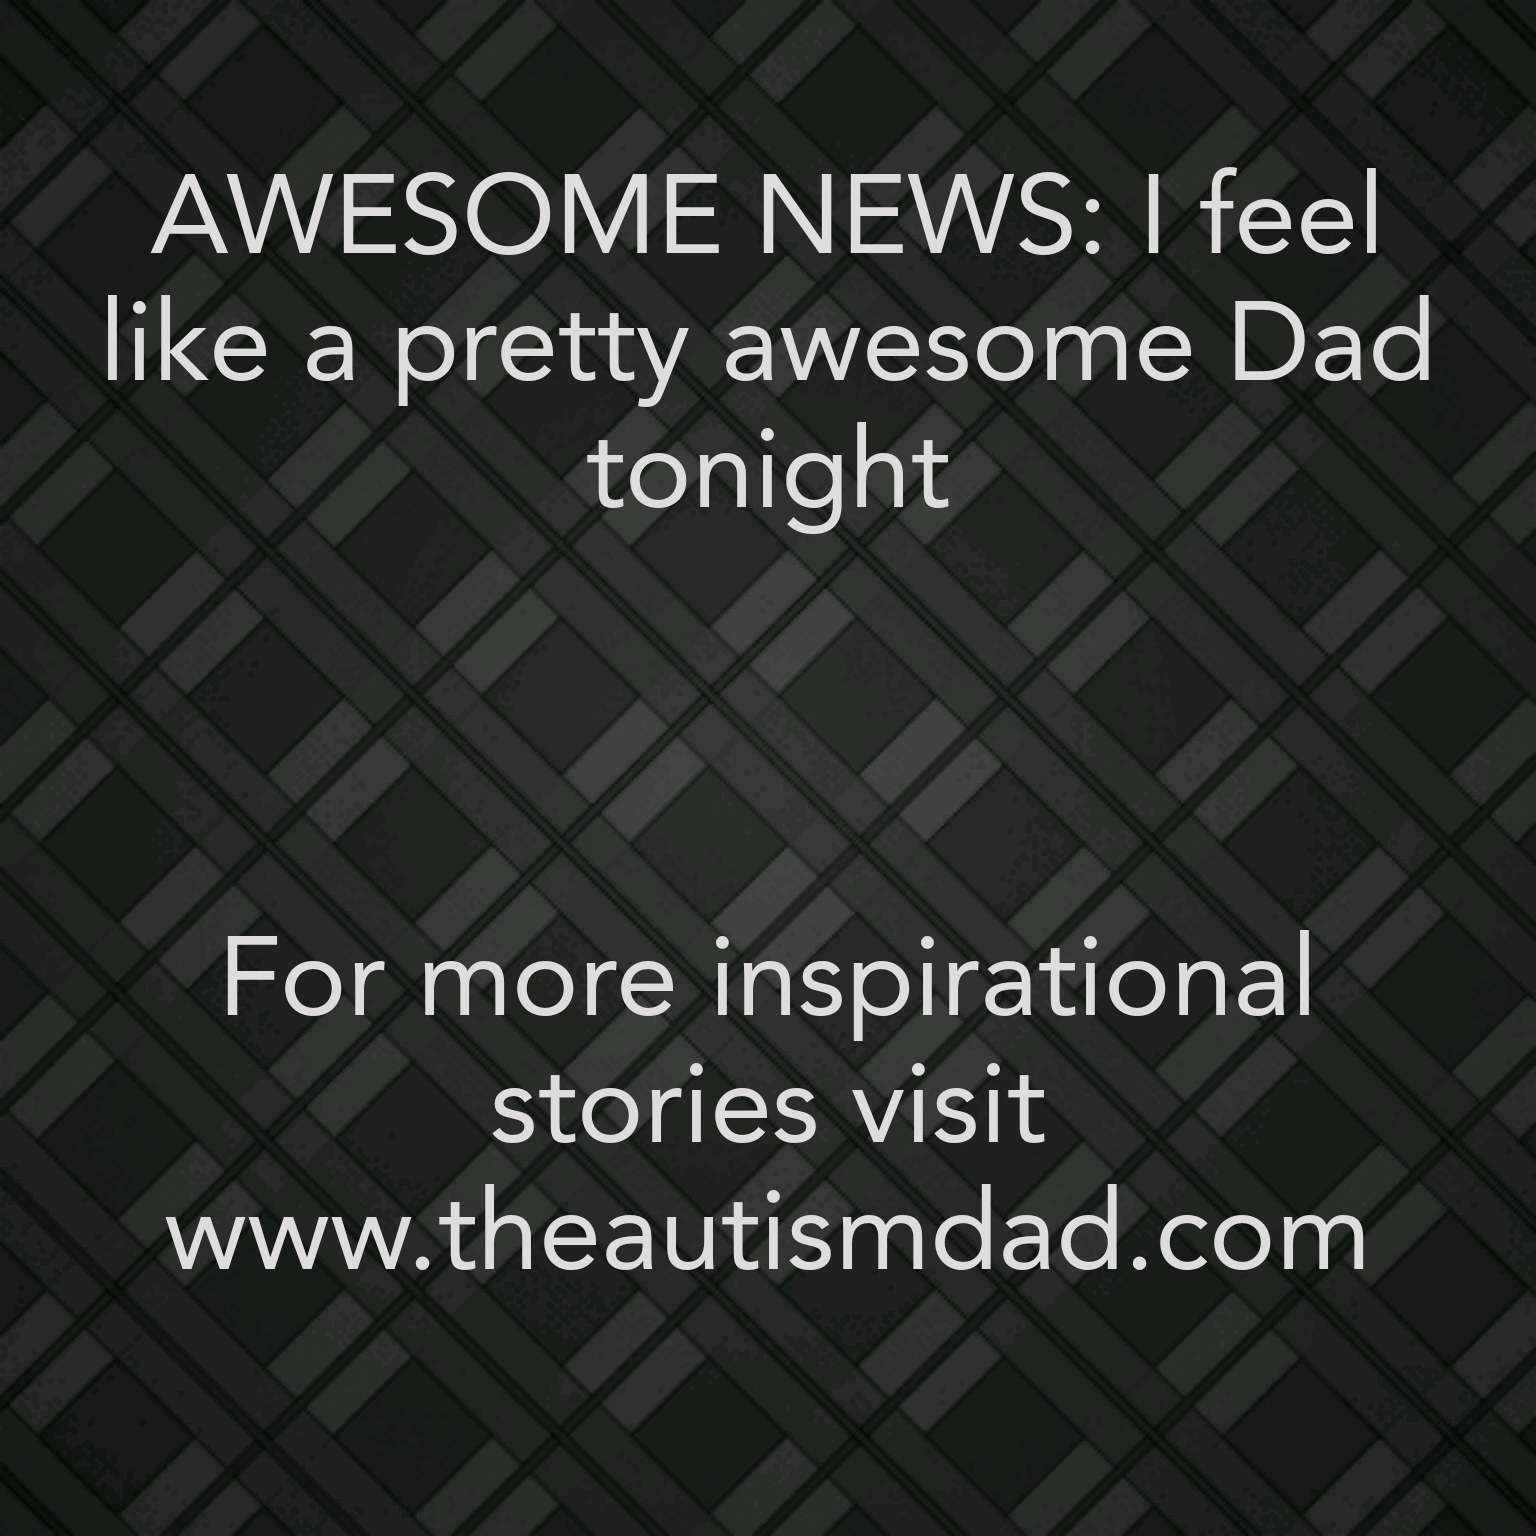 AWESOME NEWS: I feel like a pretty awesome Dad tonight